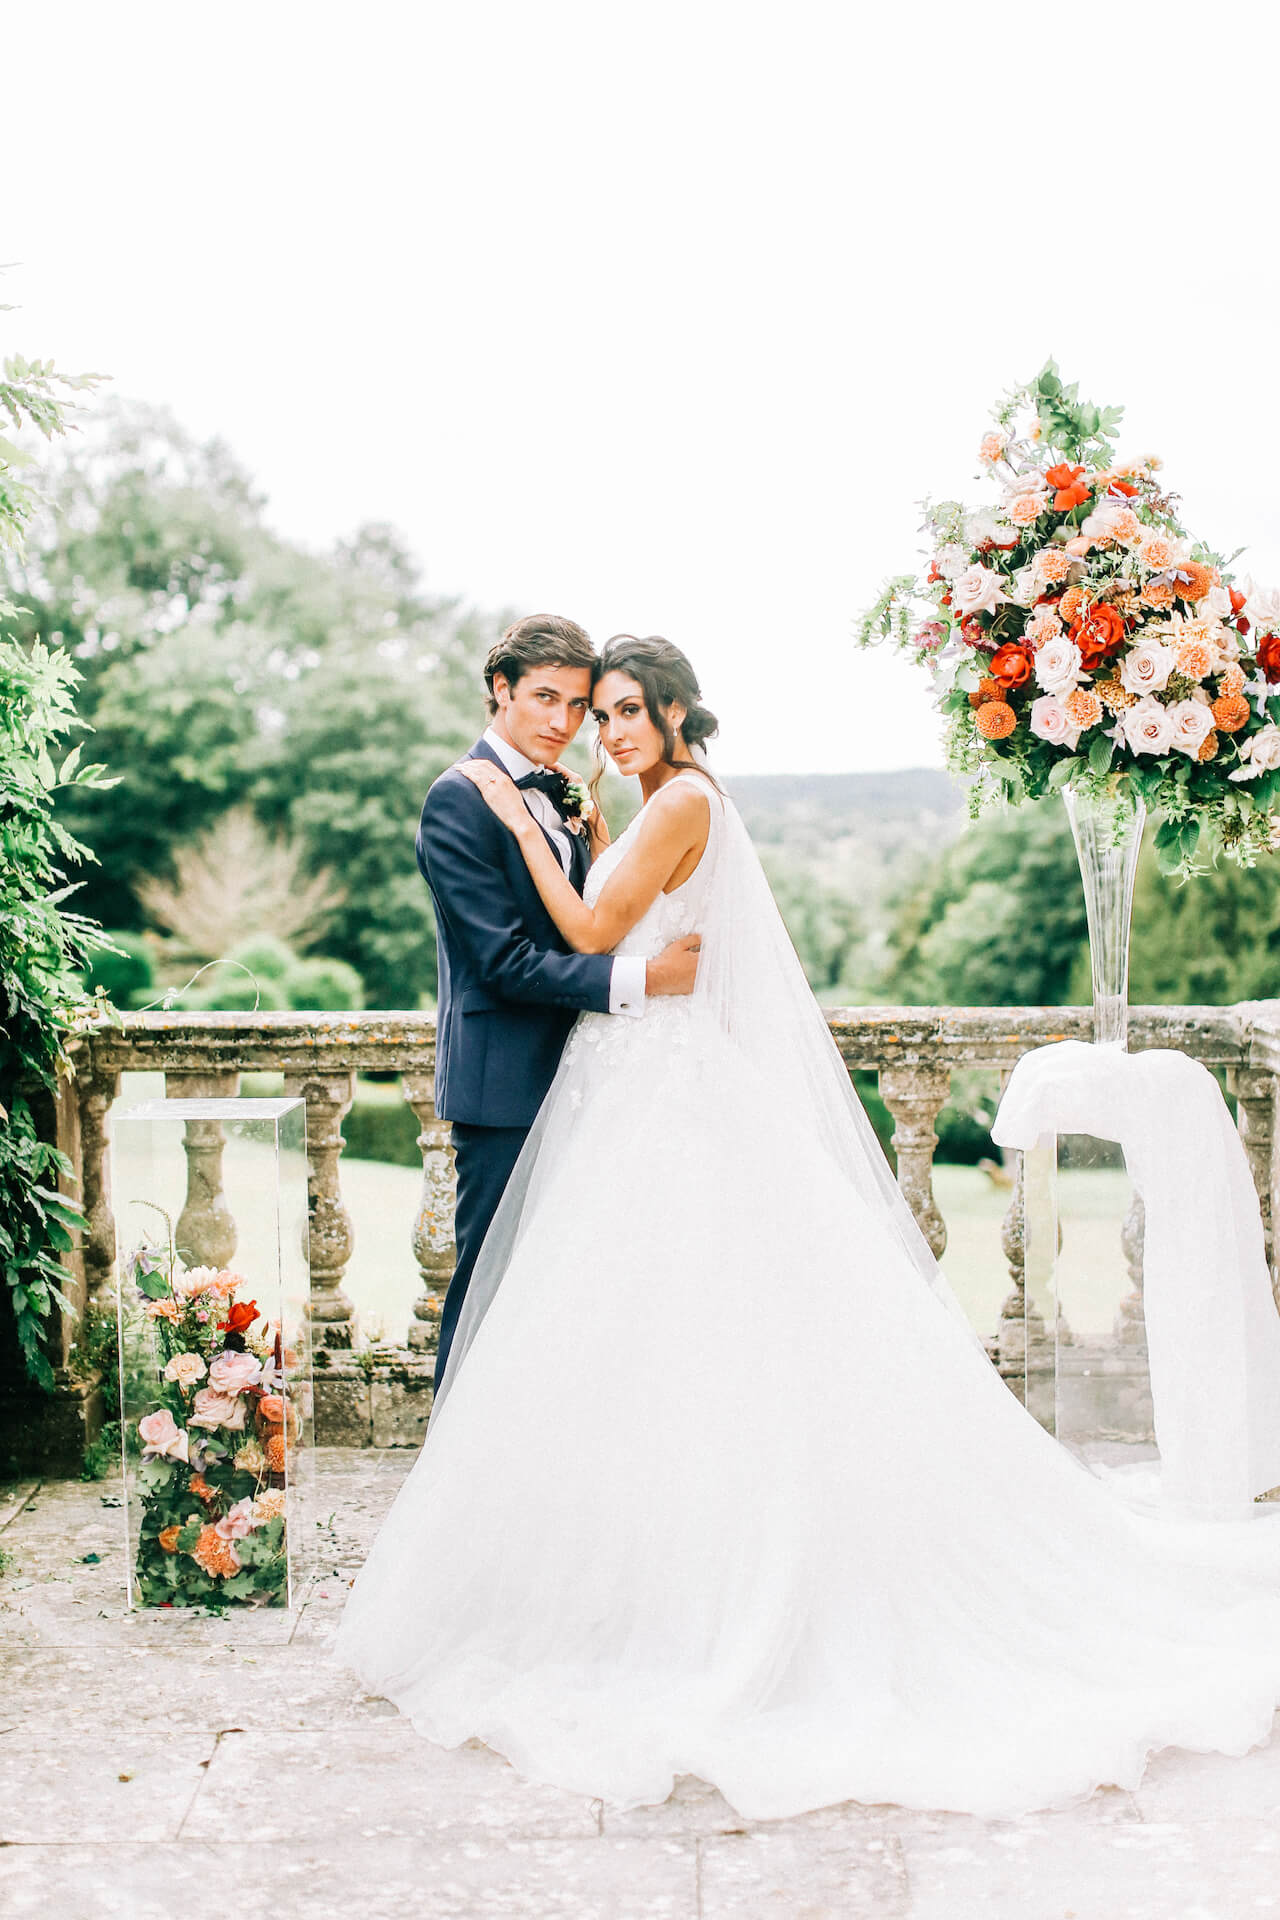 Bride and Groom in Luxury Wedding Flowers